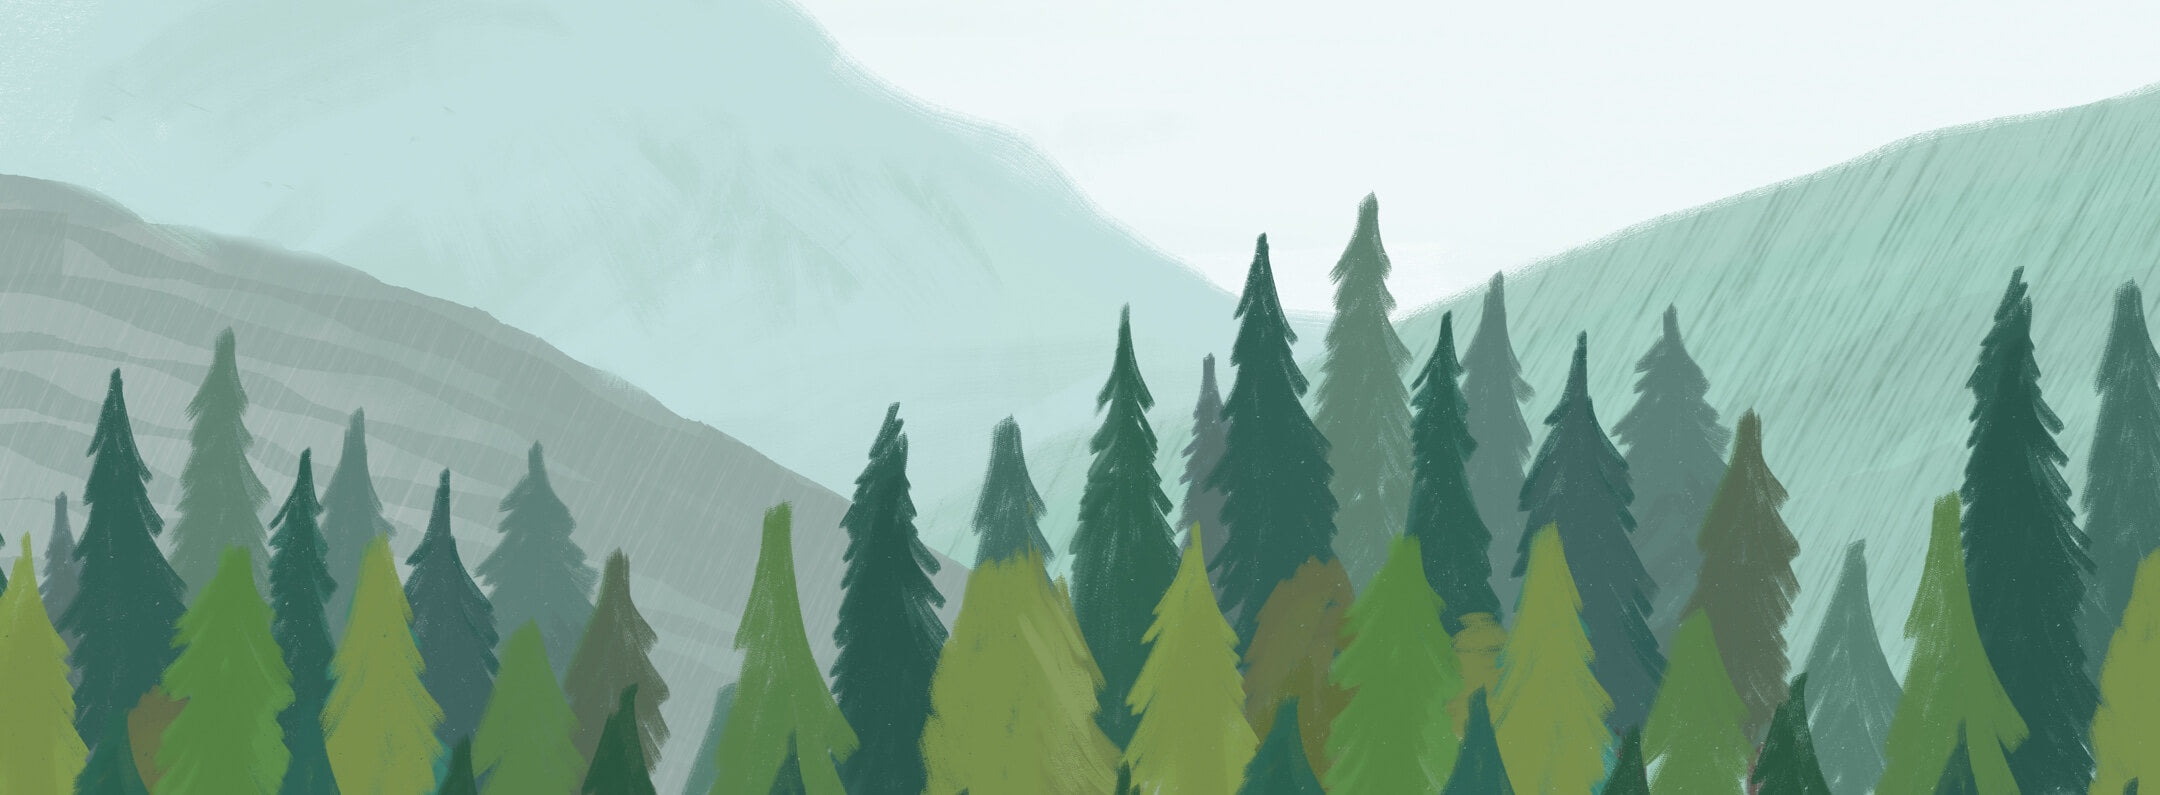 green-watercolor-forest-tree-silhouette-wallpaper